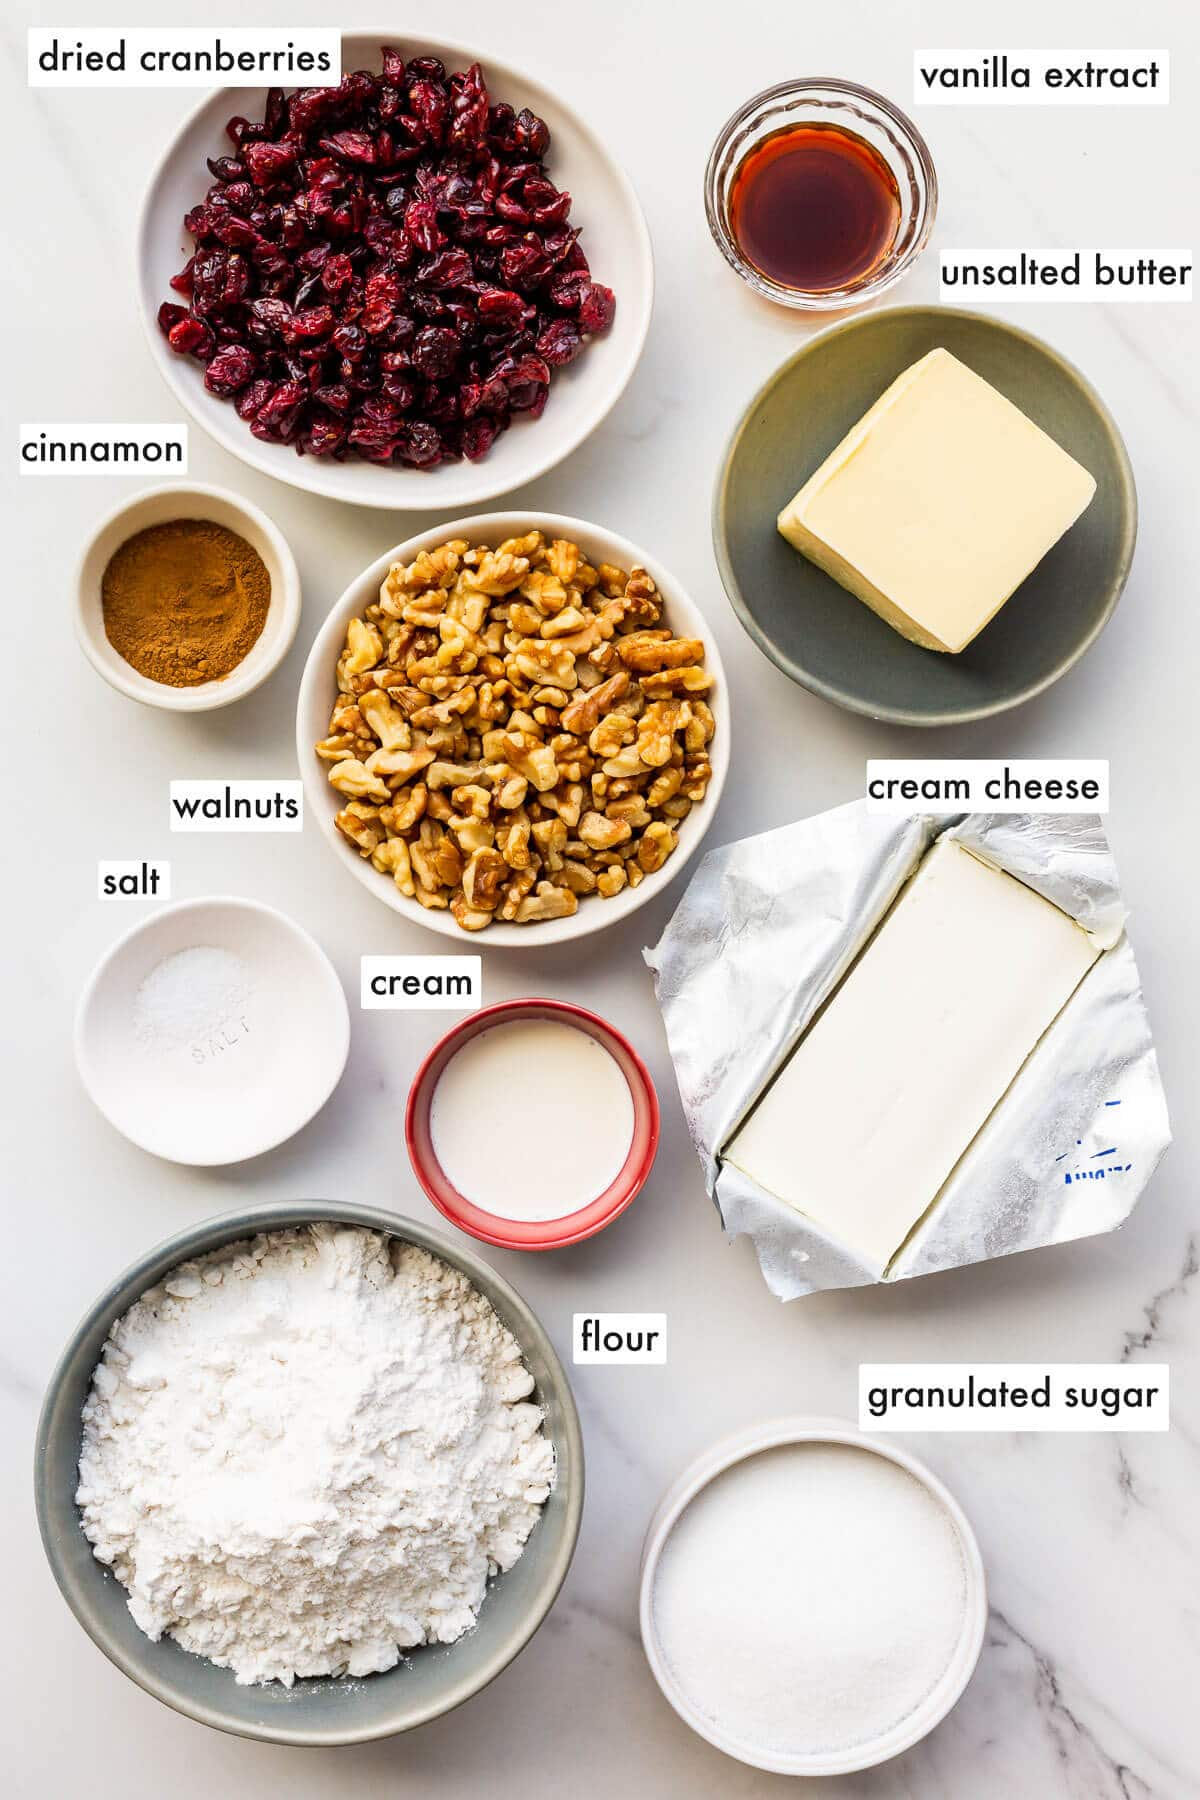 Ingredients to make rugelach with a cream cheese dough and filled with cinnamon, walnuts, and dried cranberries.